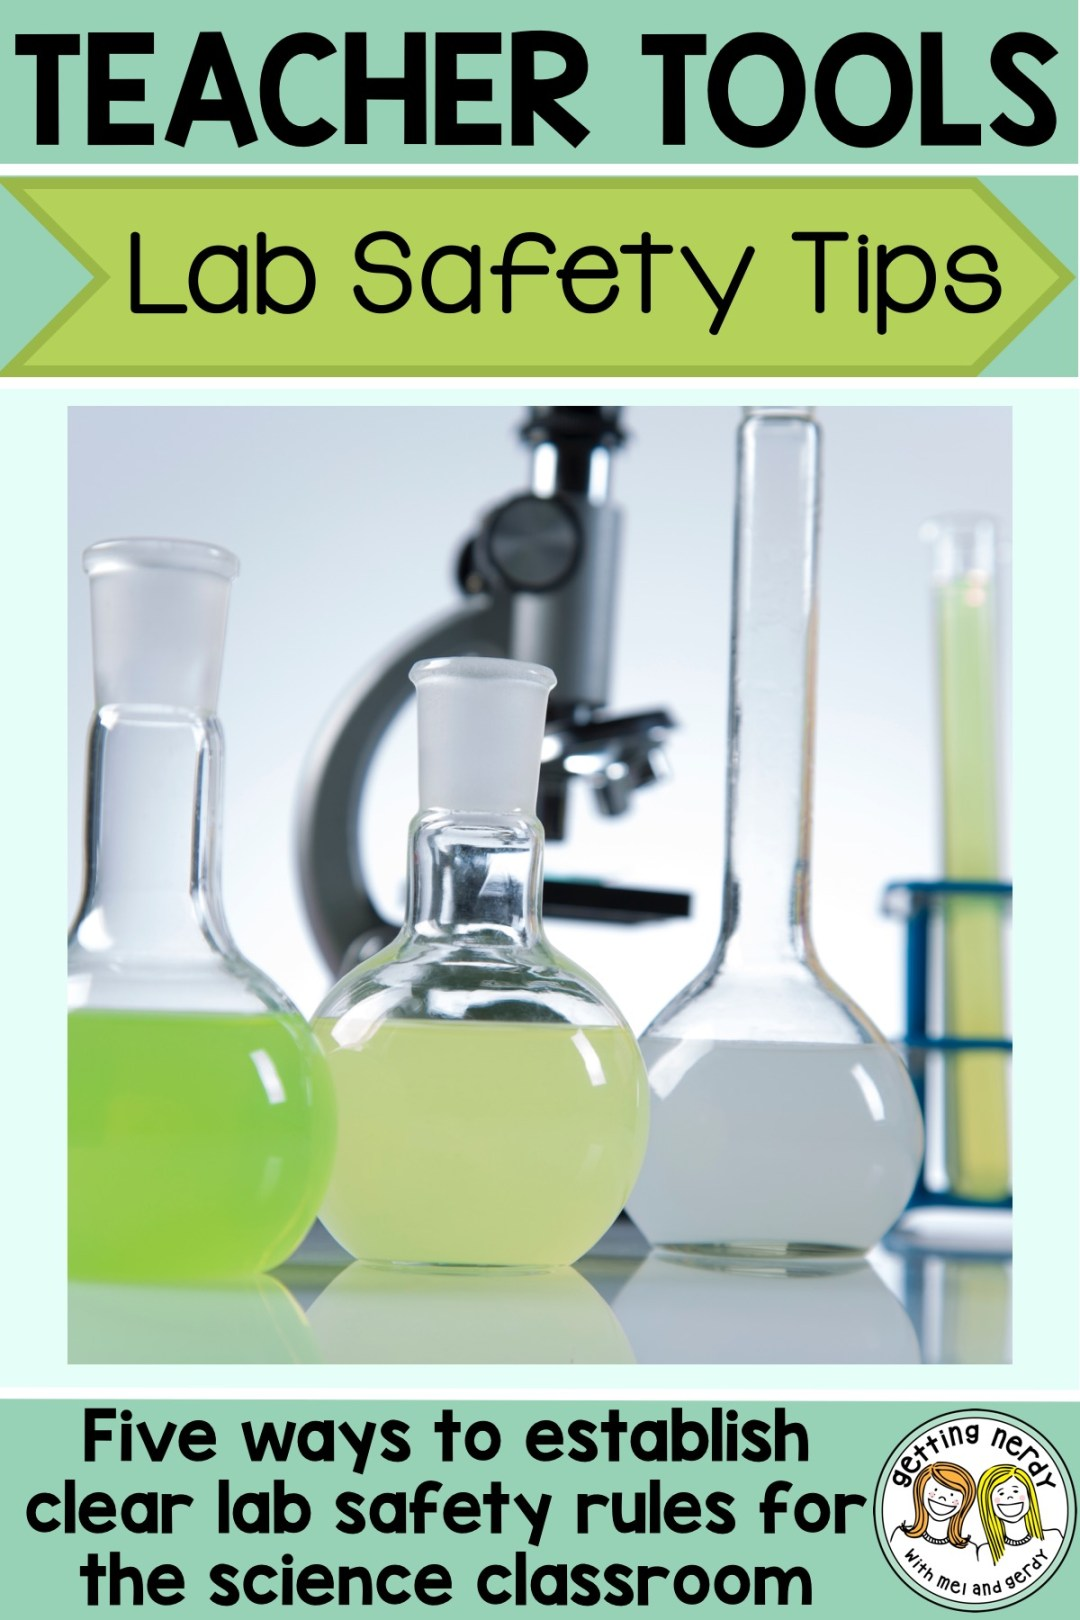 These lab safety tips will help keep the calm in your secondary science classroom #gettingnerdyscience #labsafety #lifescience